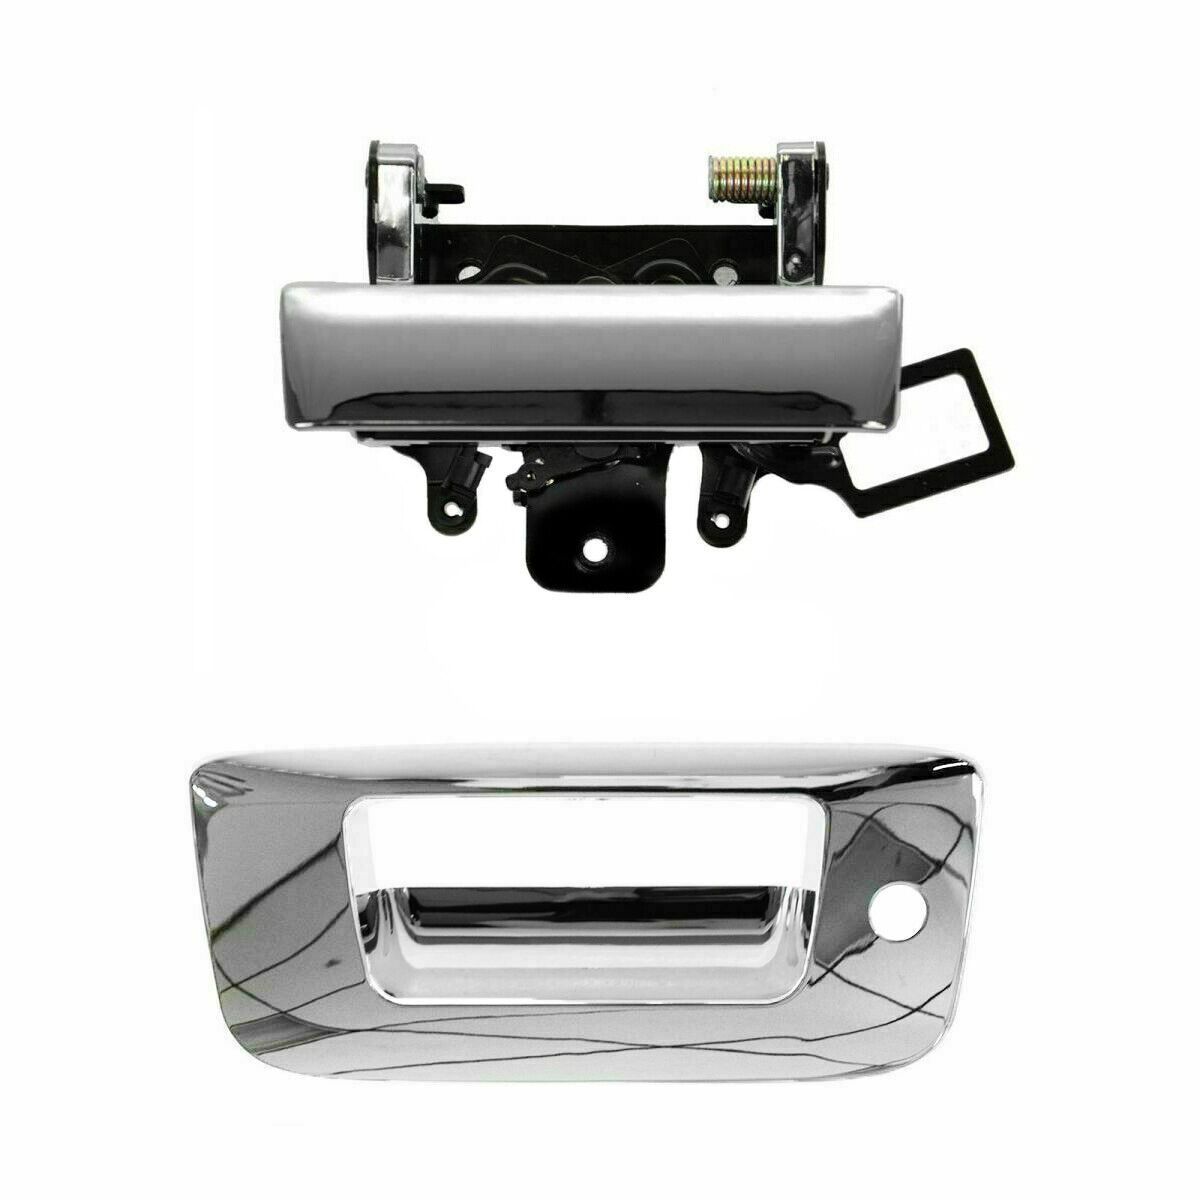 New Tailgate Handle for Chevrolet Silverado 1500 2007-2014